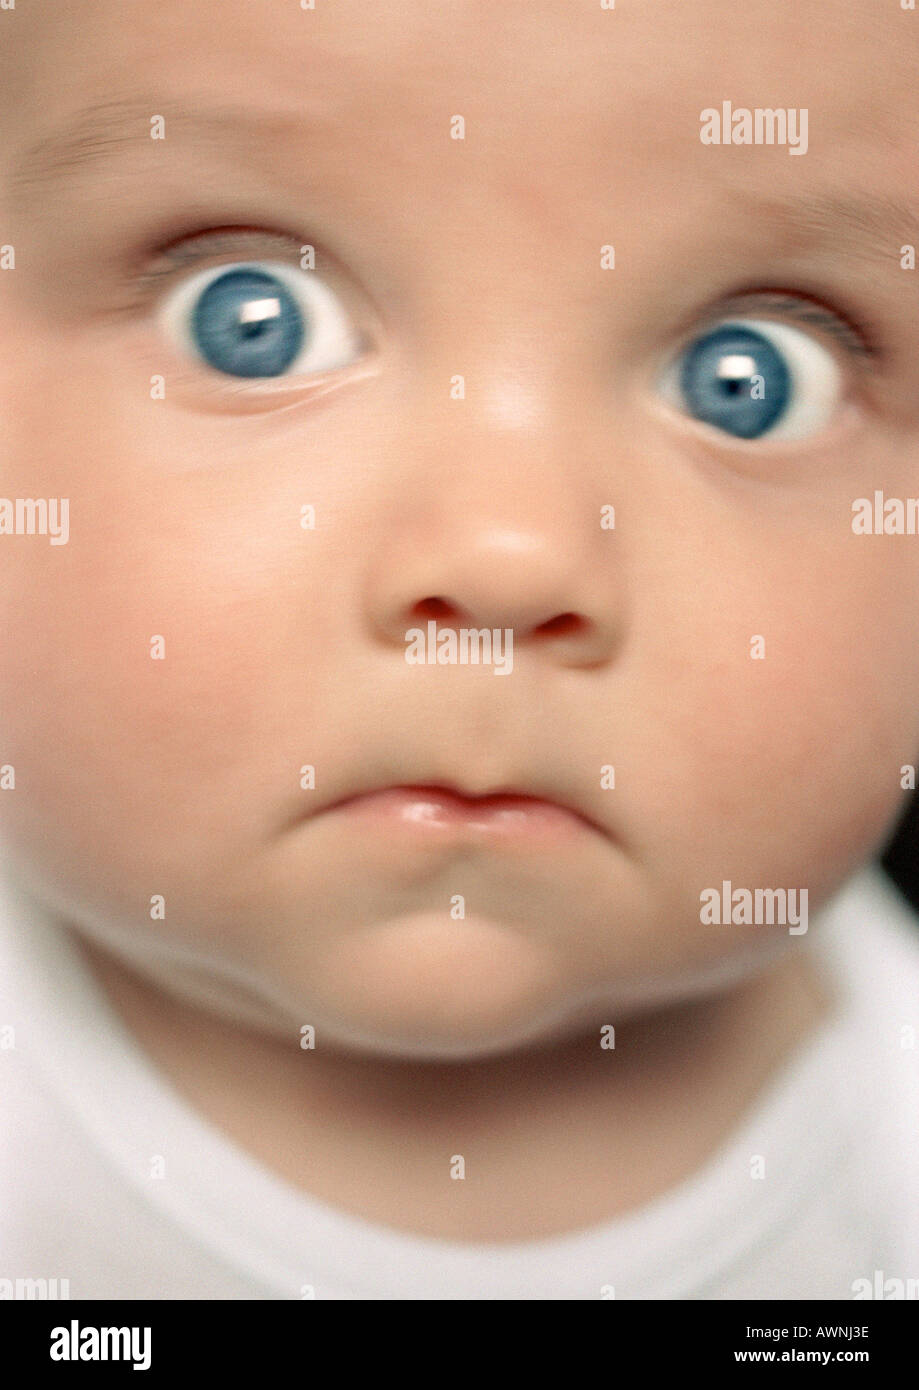 baby looking at camera with eyes wide open close up stock